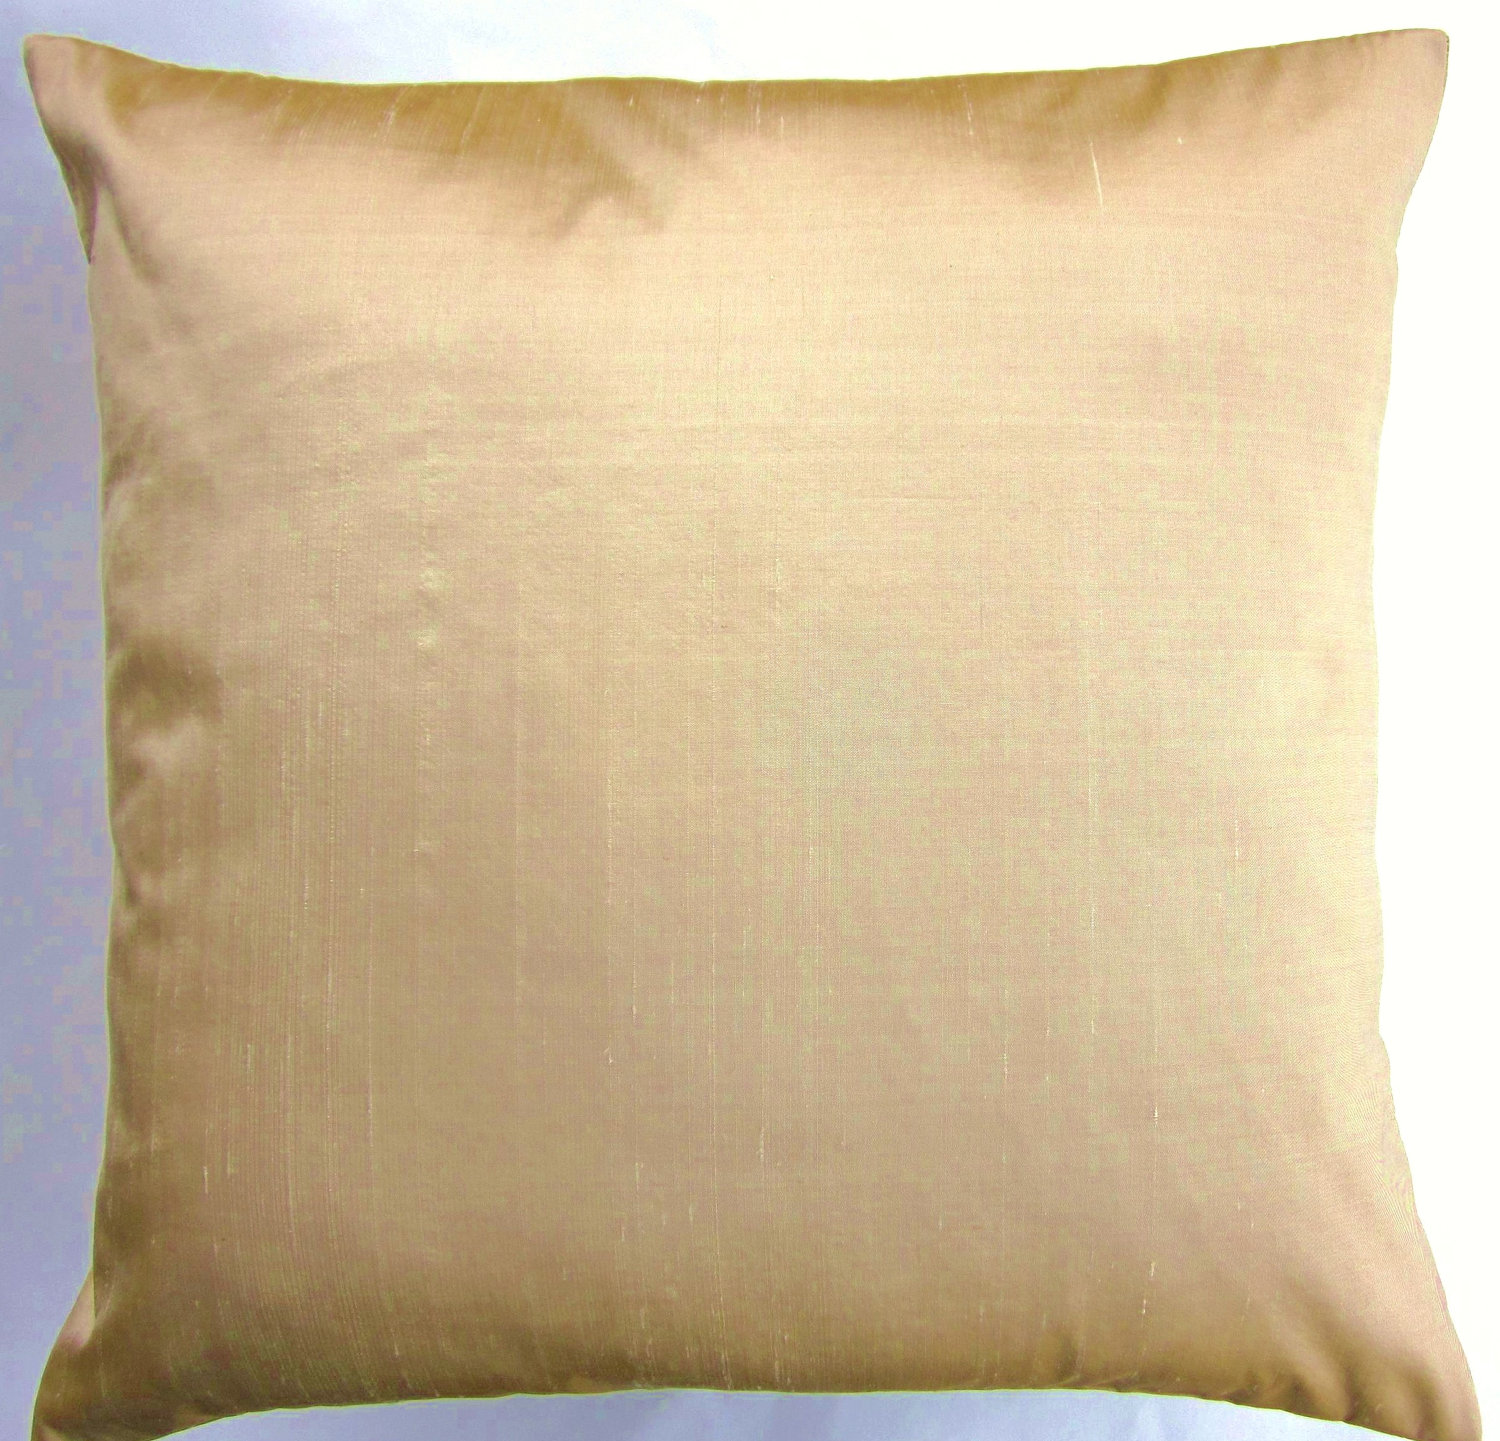 Cheap Decorative Pillows | Gold Throw Pillows | Target Cushions